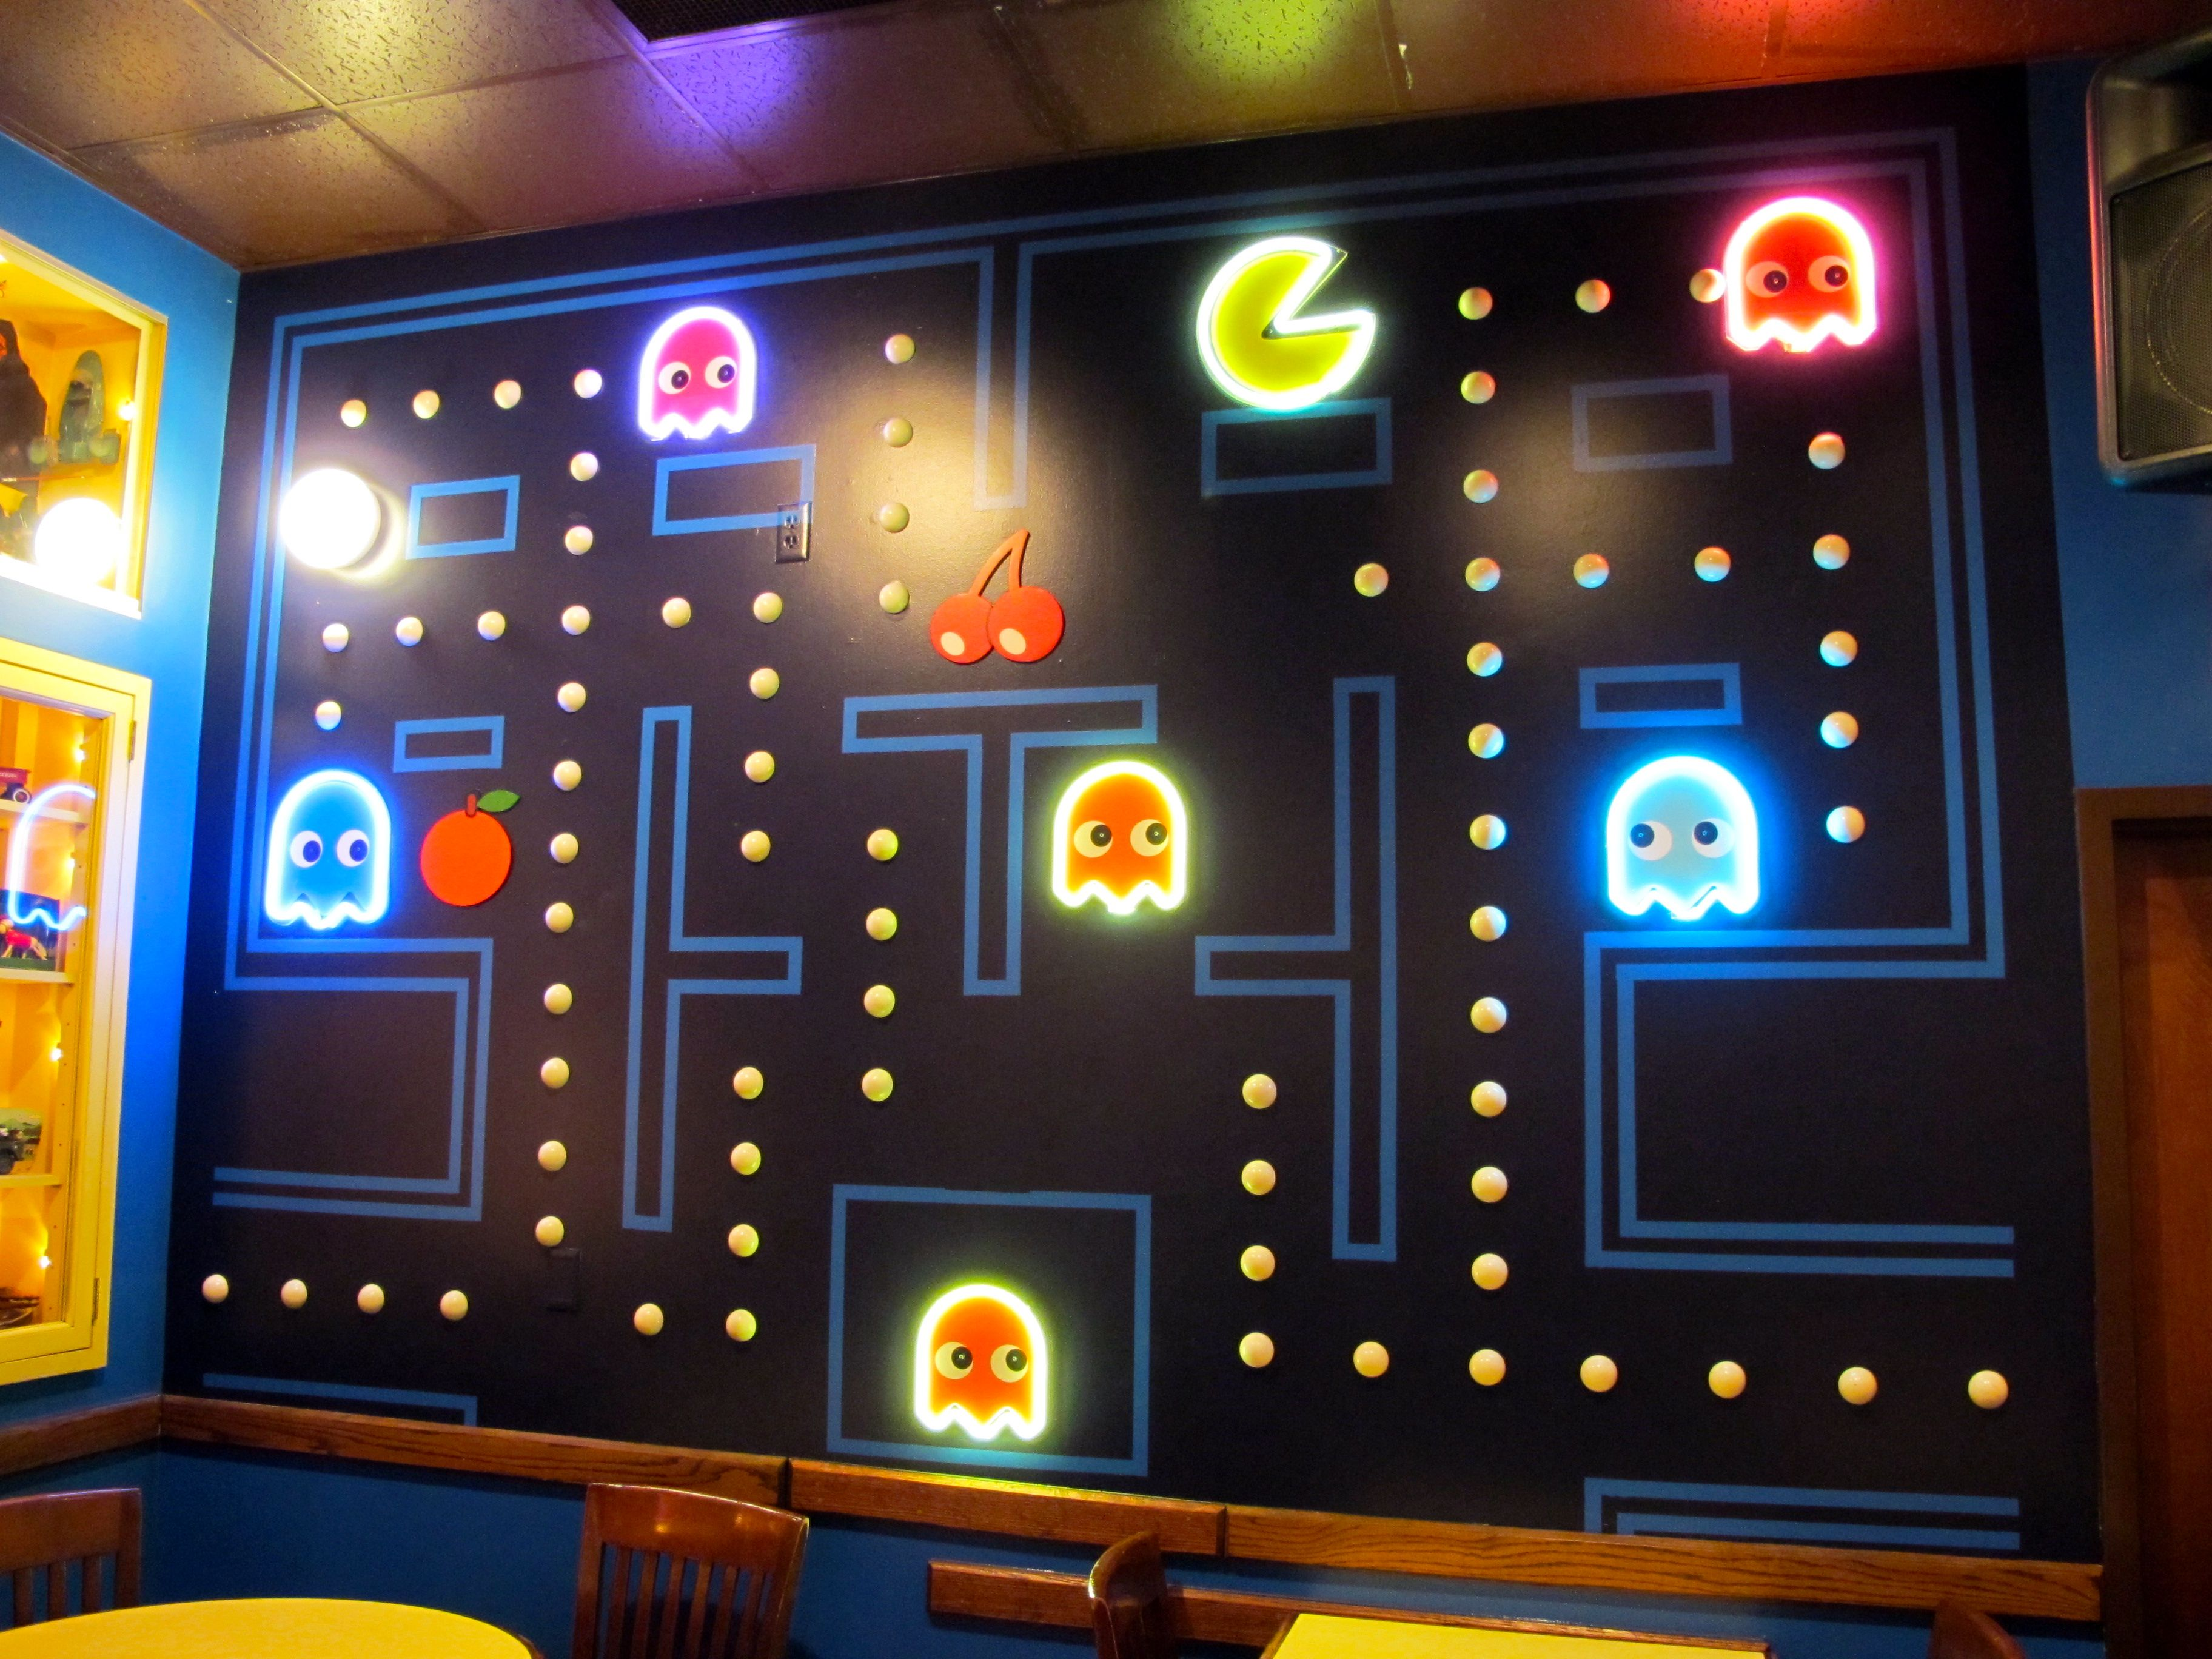 Pac Man Room At The Blueberry Hill Restaurant In St. Louis, MO. Very Cool  Wall Design.